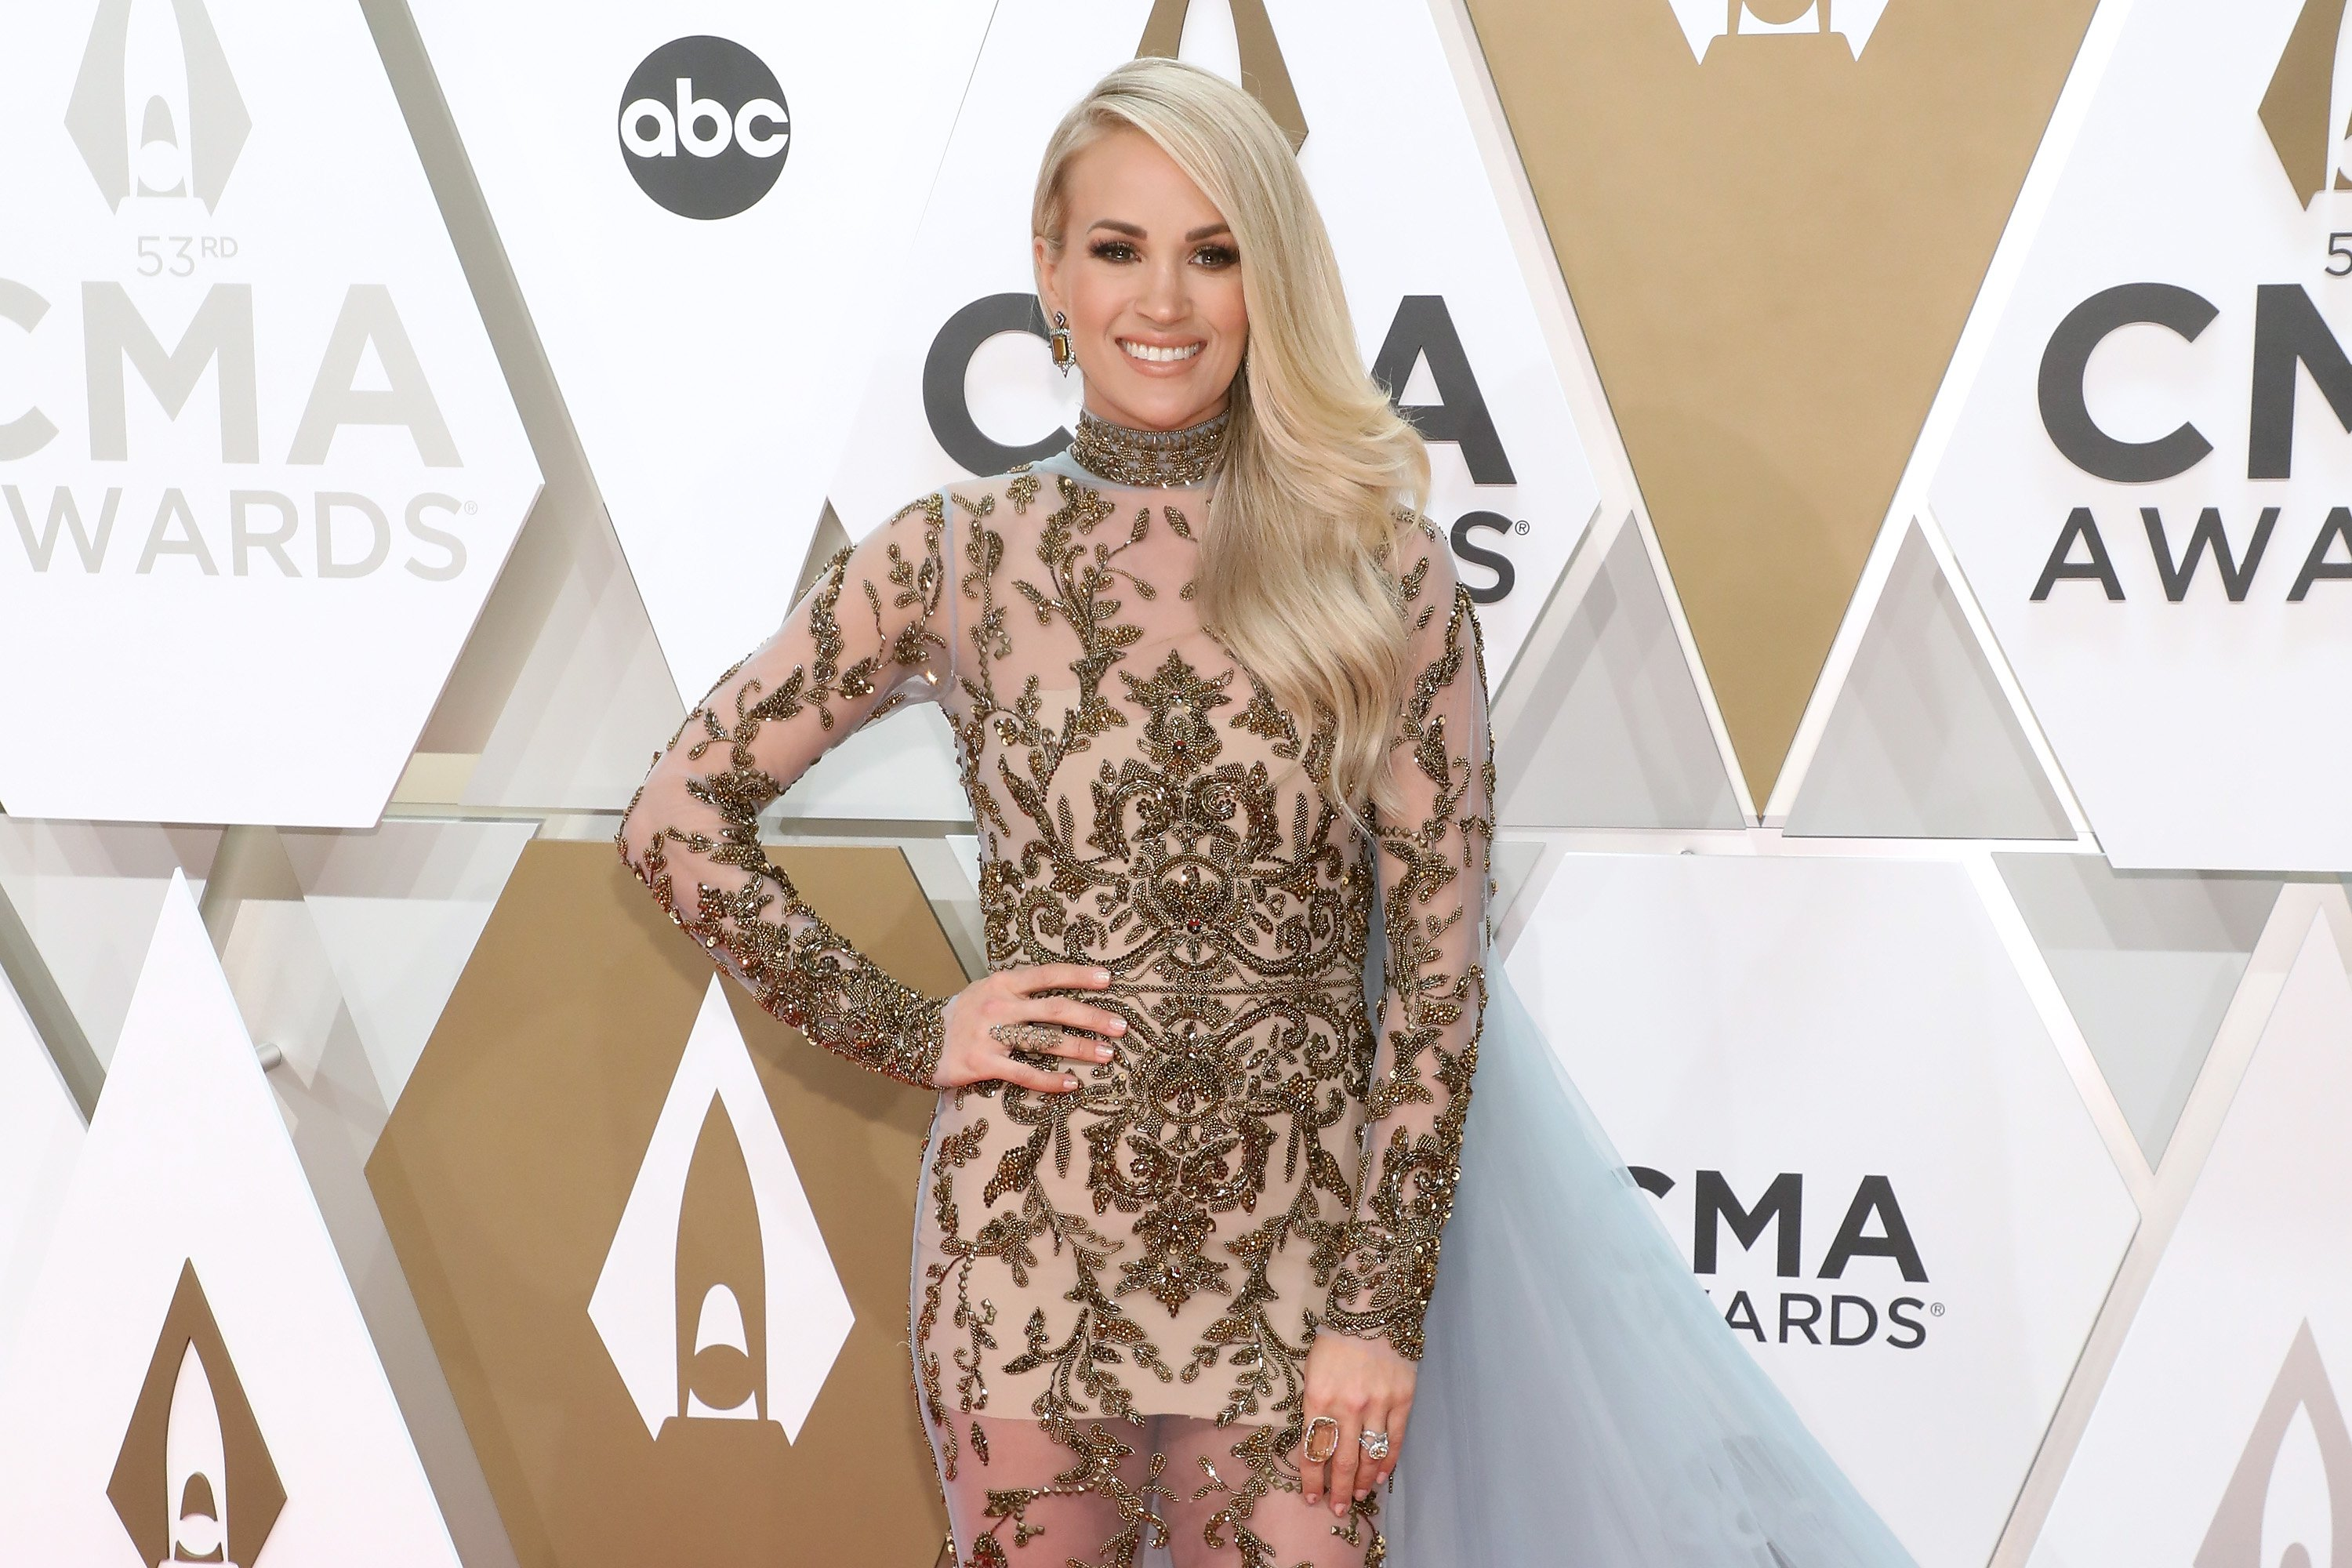 Carrie Underwood attends the 53nd annual CMA Awards on November 13, 2019, in Nashville, Tennessee.   Source: Getty Images.